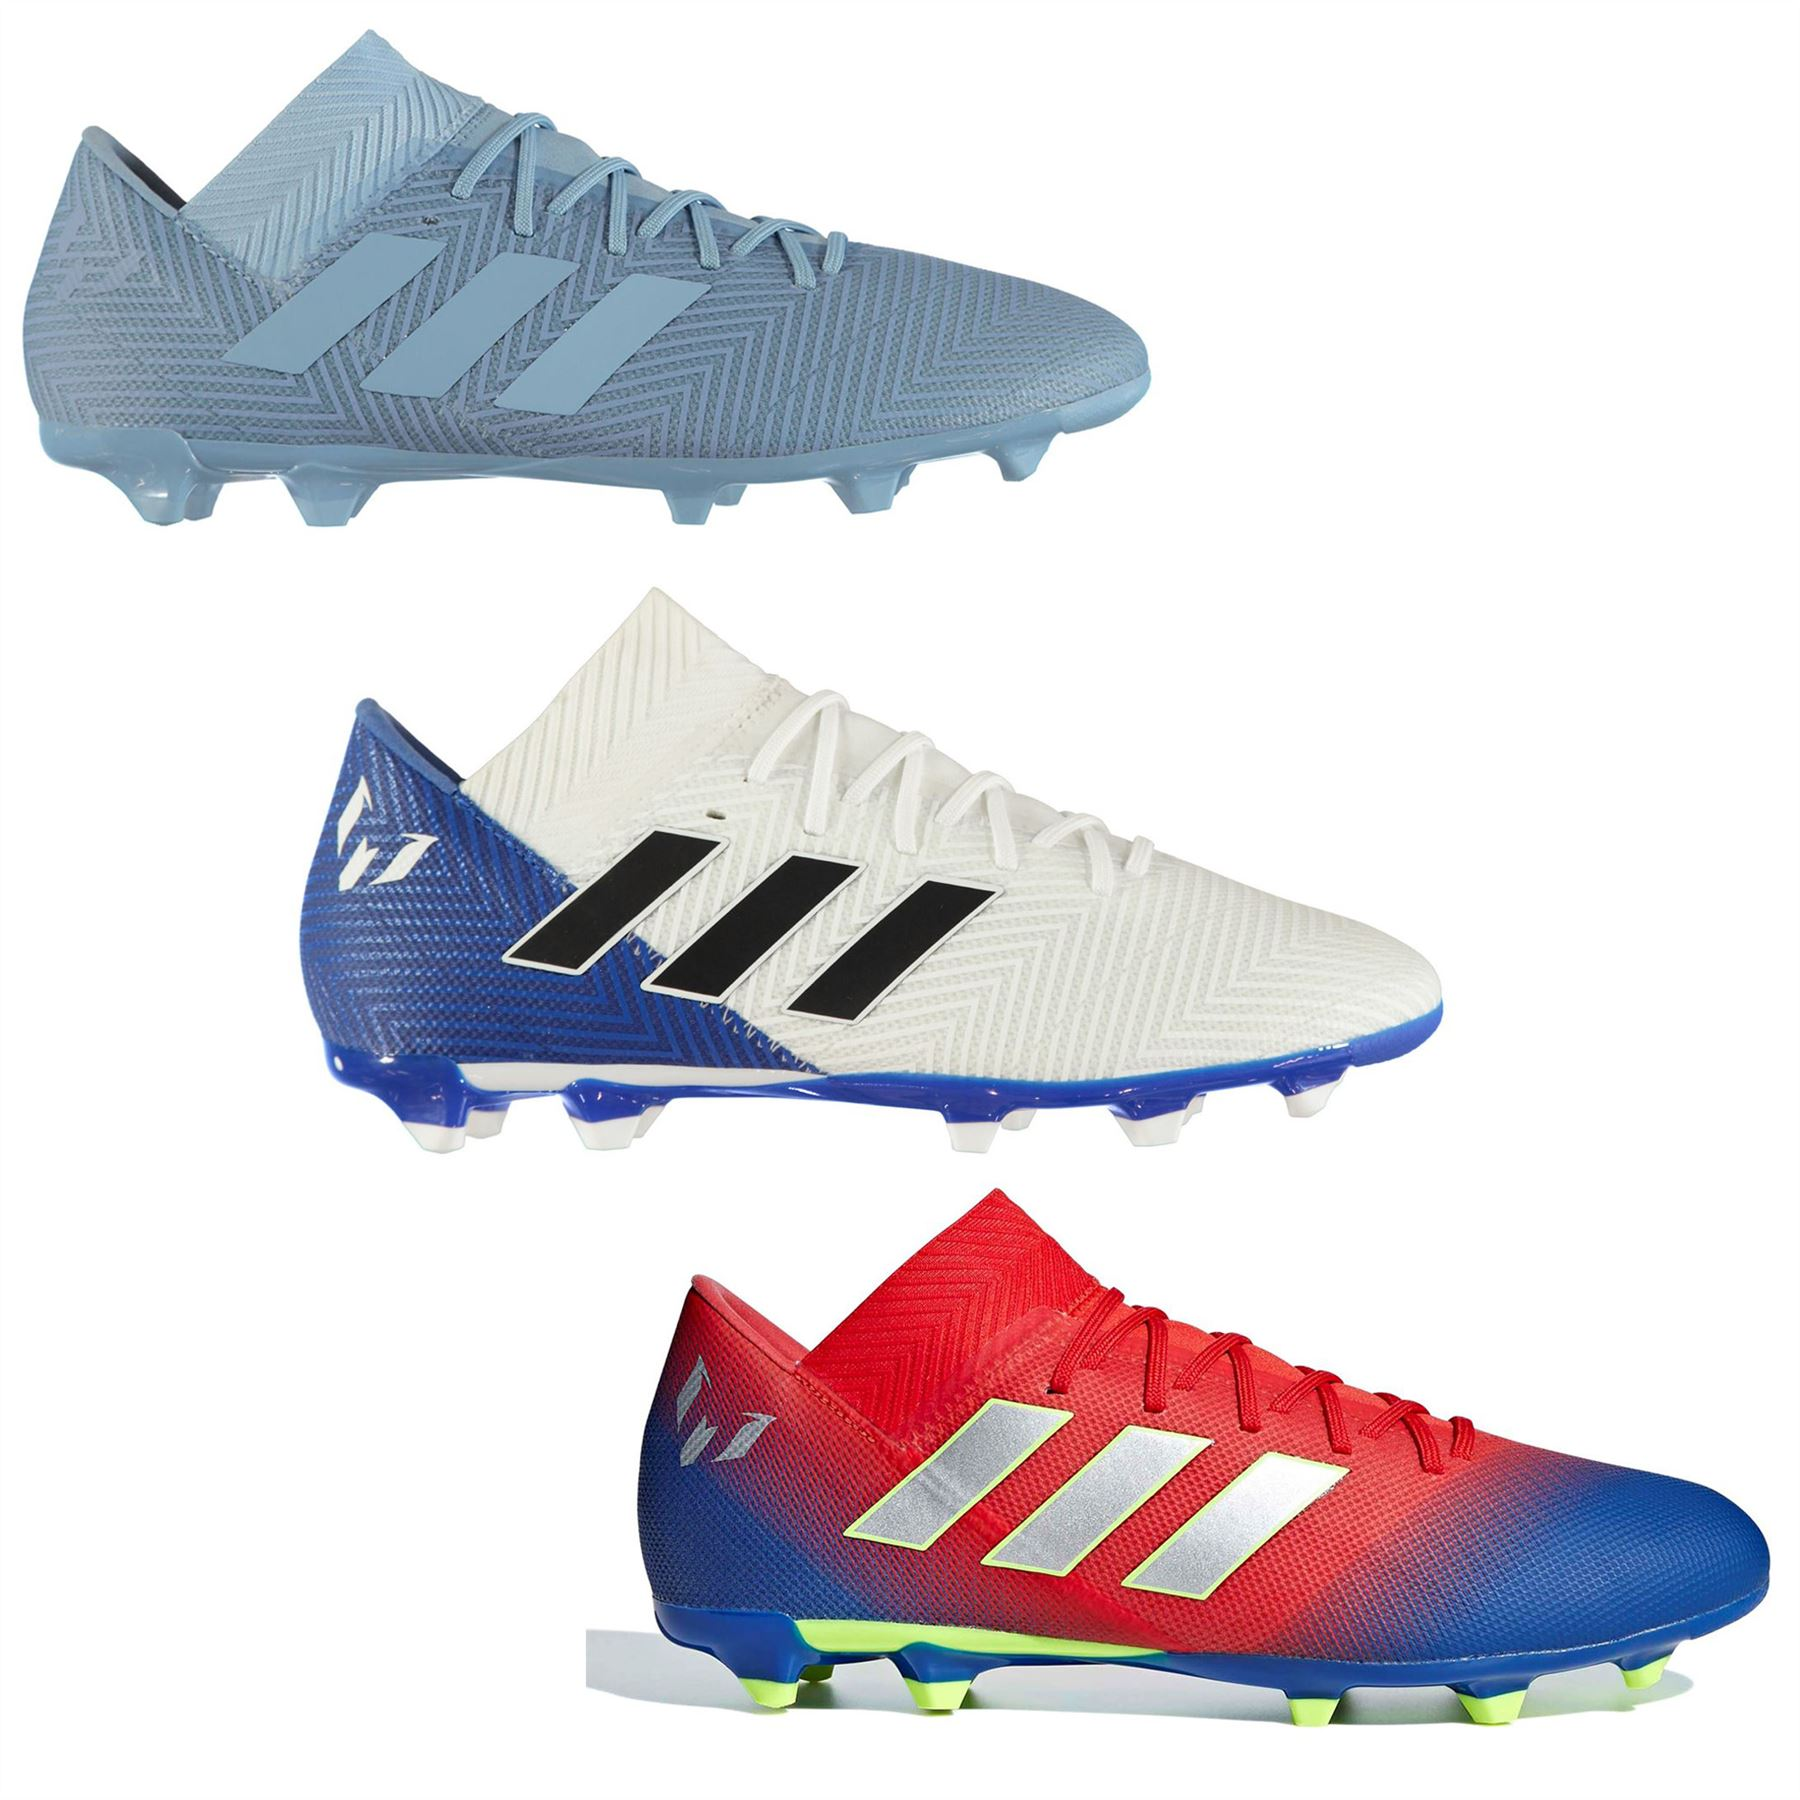 Details about adidas Nemeziz Messi 18.3 FG Firm Ground Football Boots Mens  Soccer Shoes Cleats